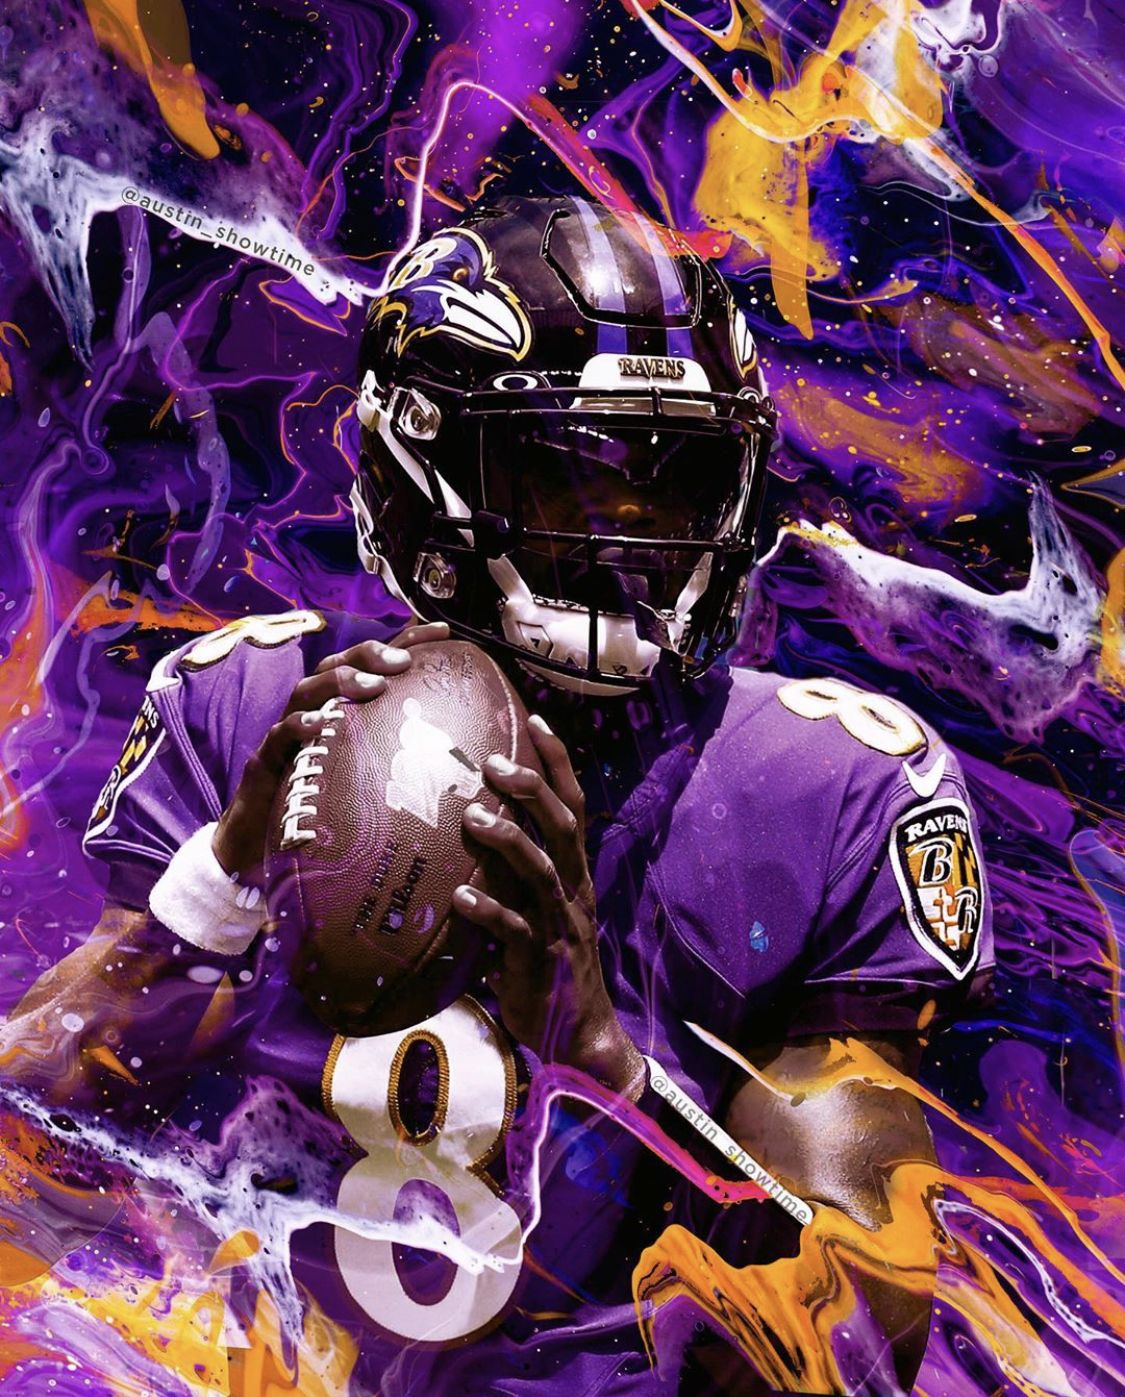 Lamar Jackson Mvp Ravens Football Nfl Football Wallpaper Baltimore Ravens Football